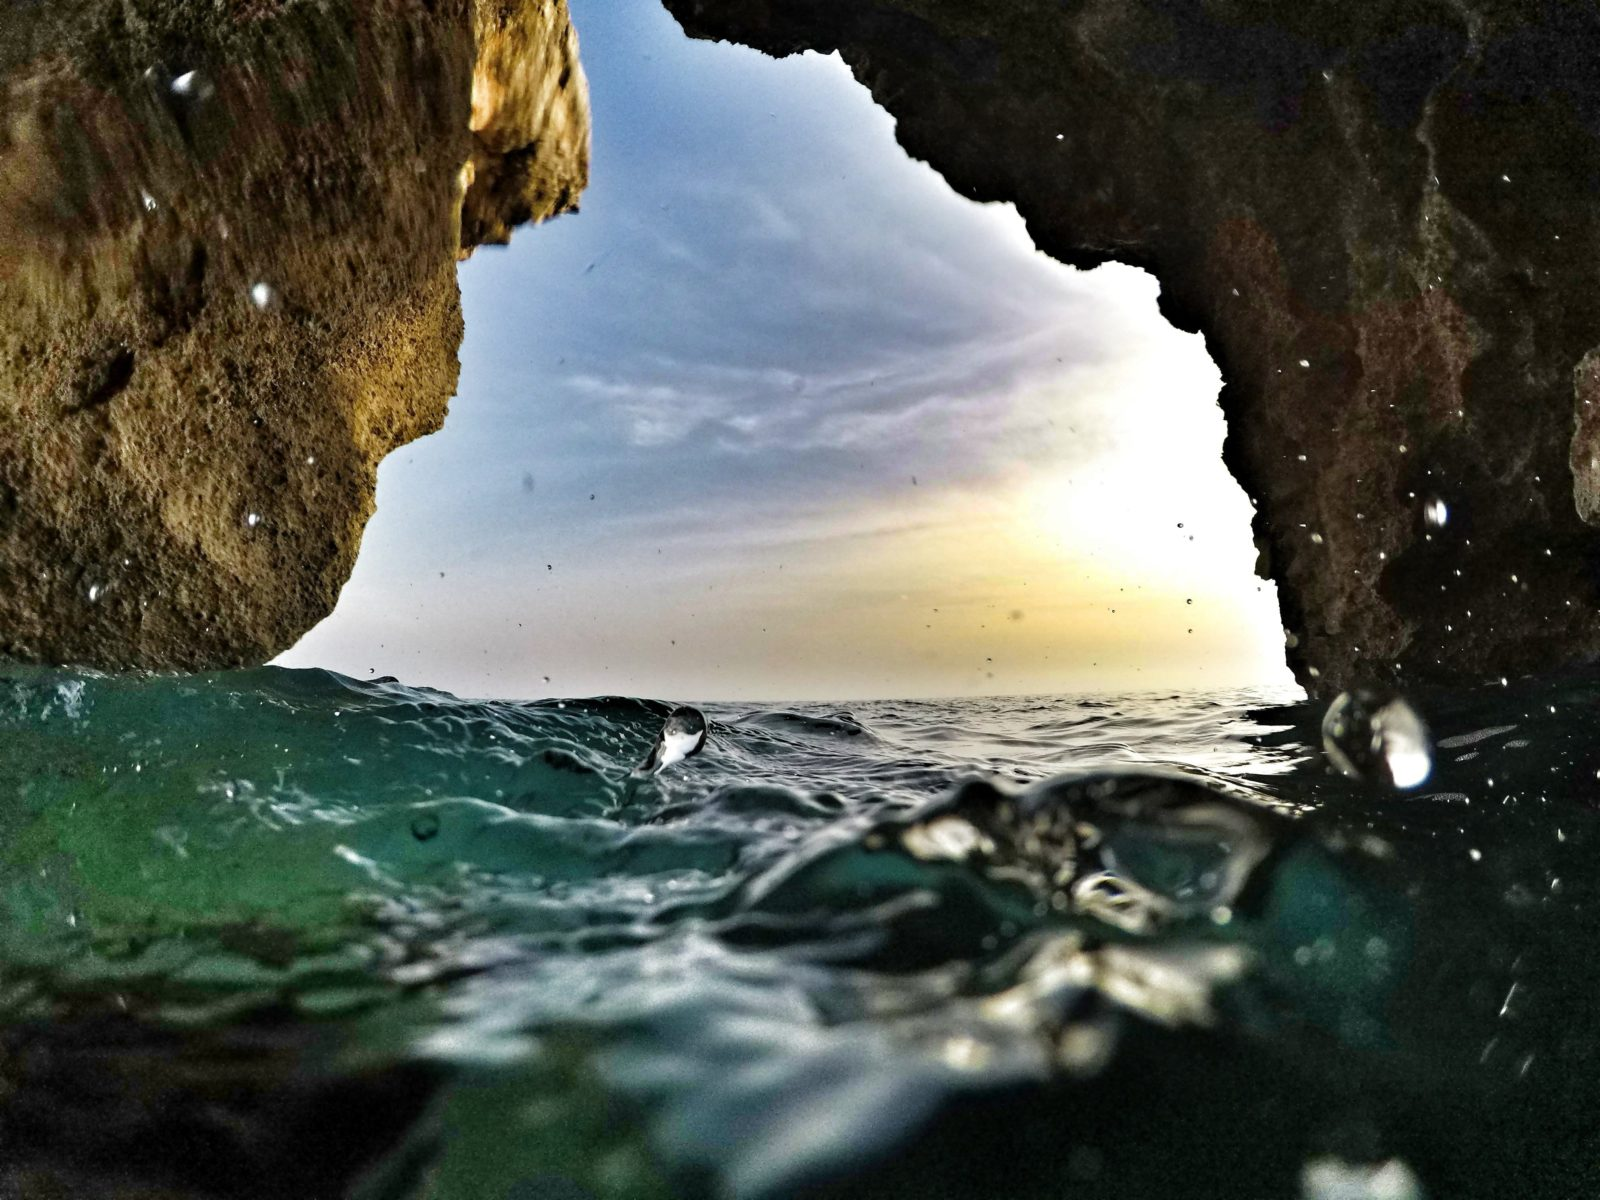 Sea caves of Cyprus a picture from within